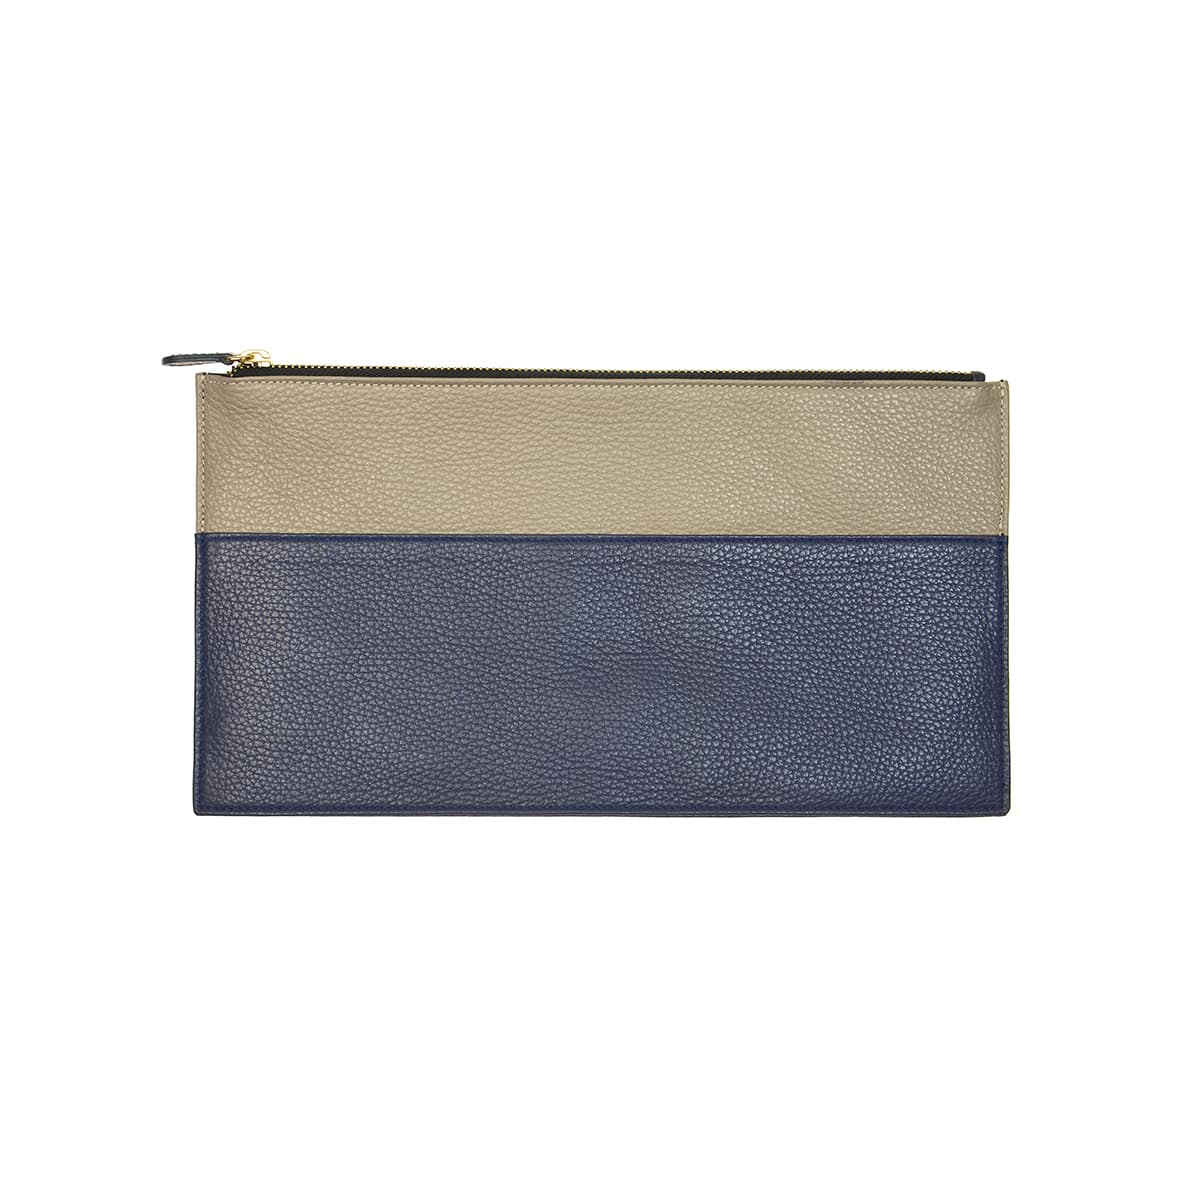 Slim leather handmade clutch blue & taupe by CORALIE DE SEYNES - L'Erudite Concept Store